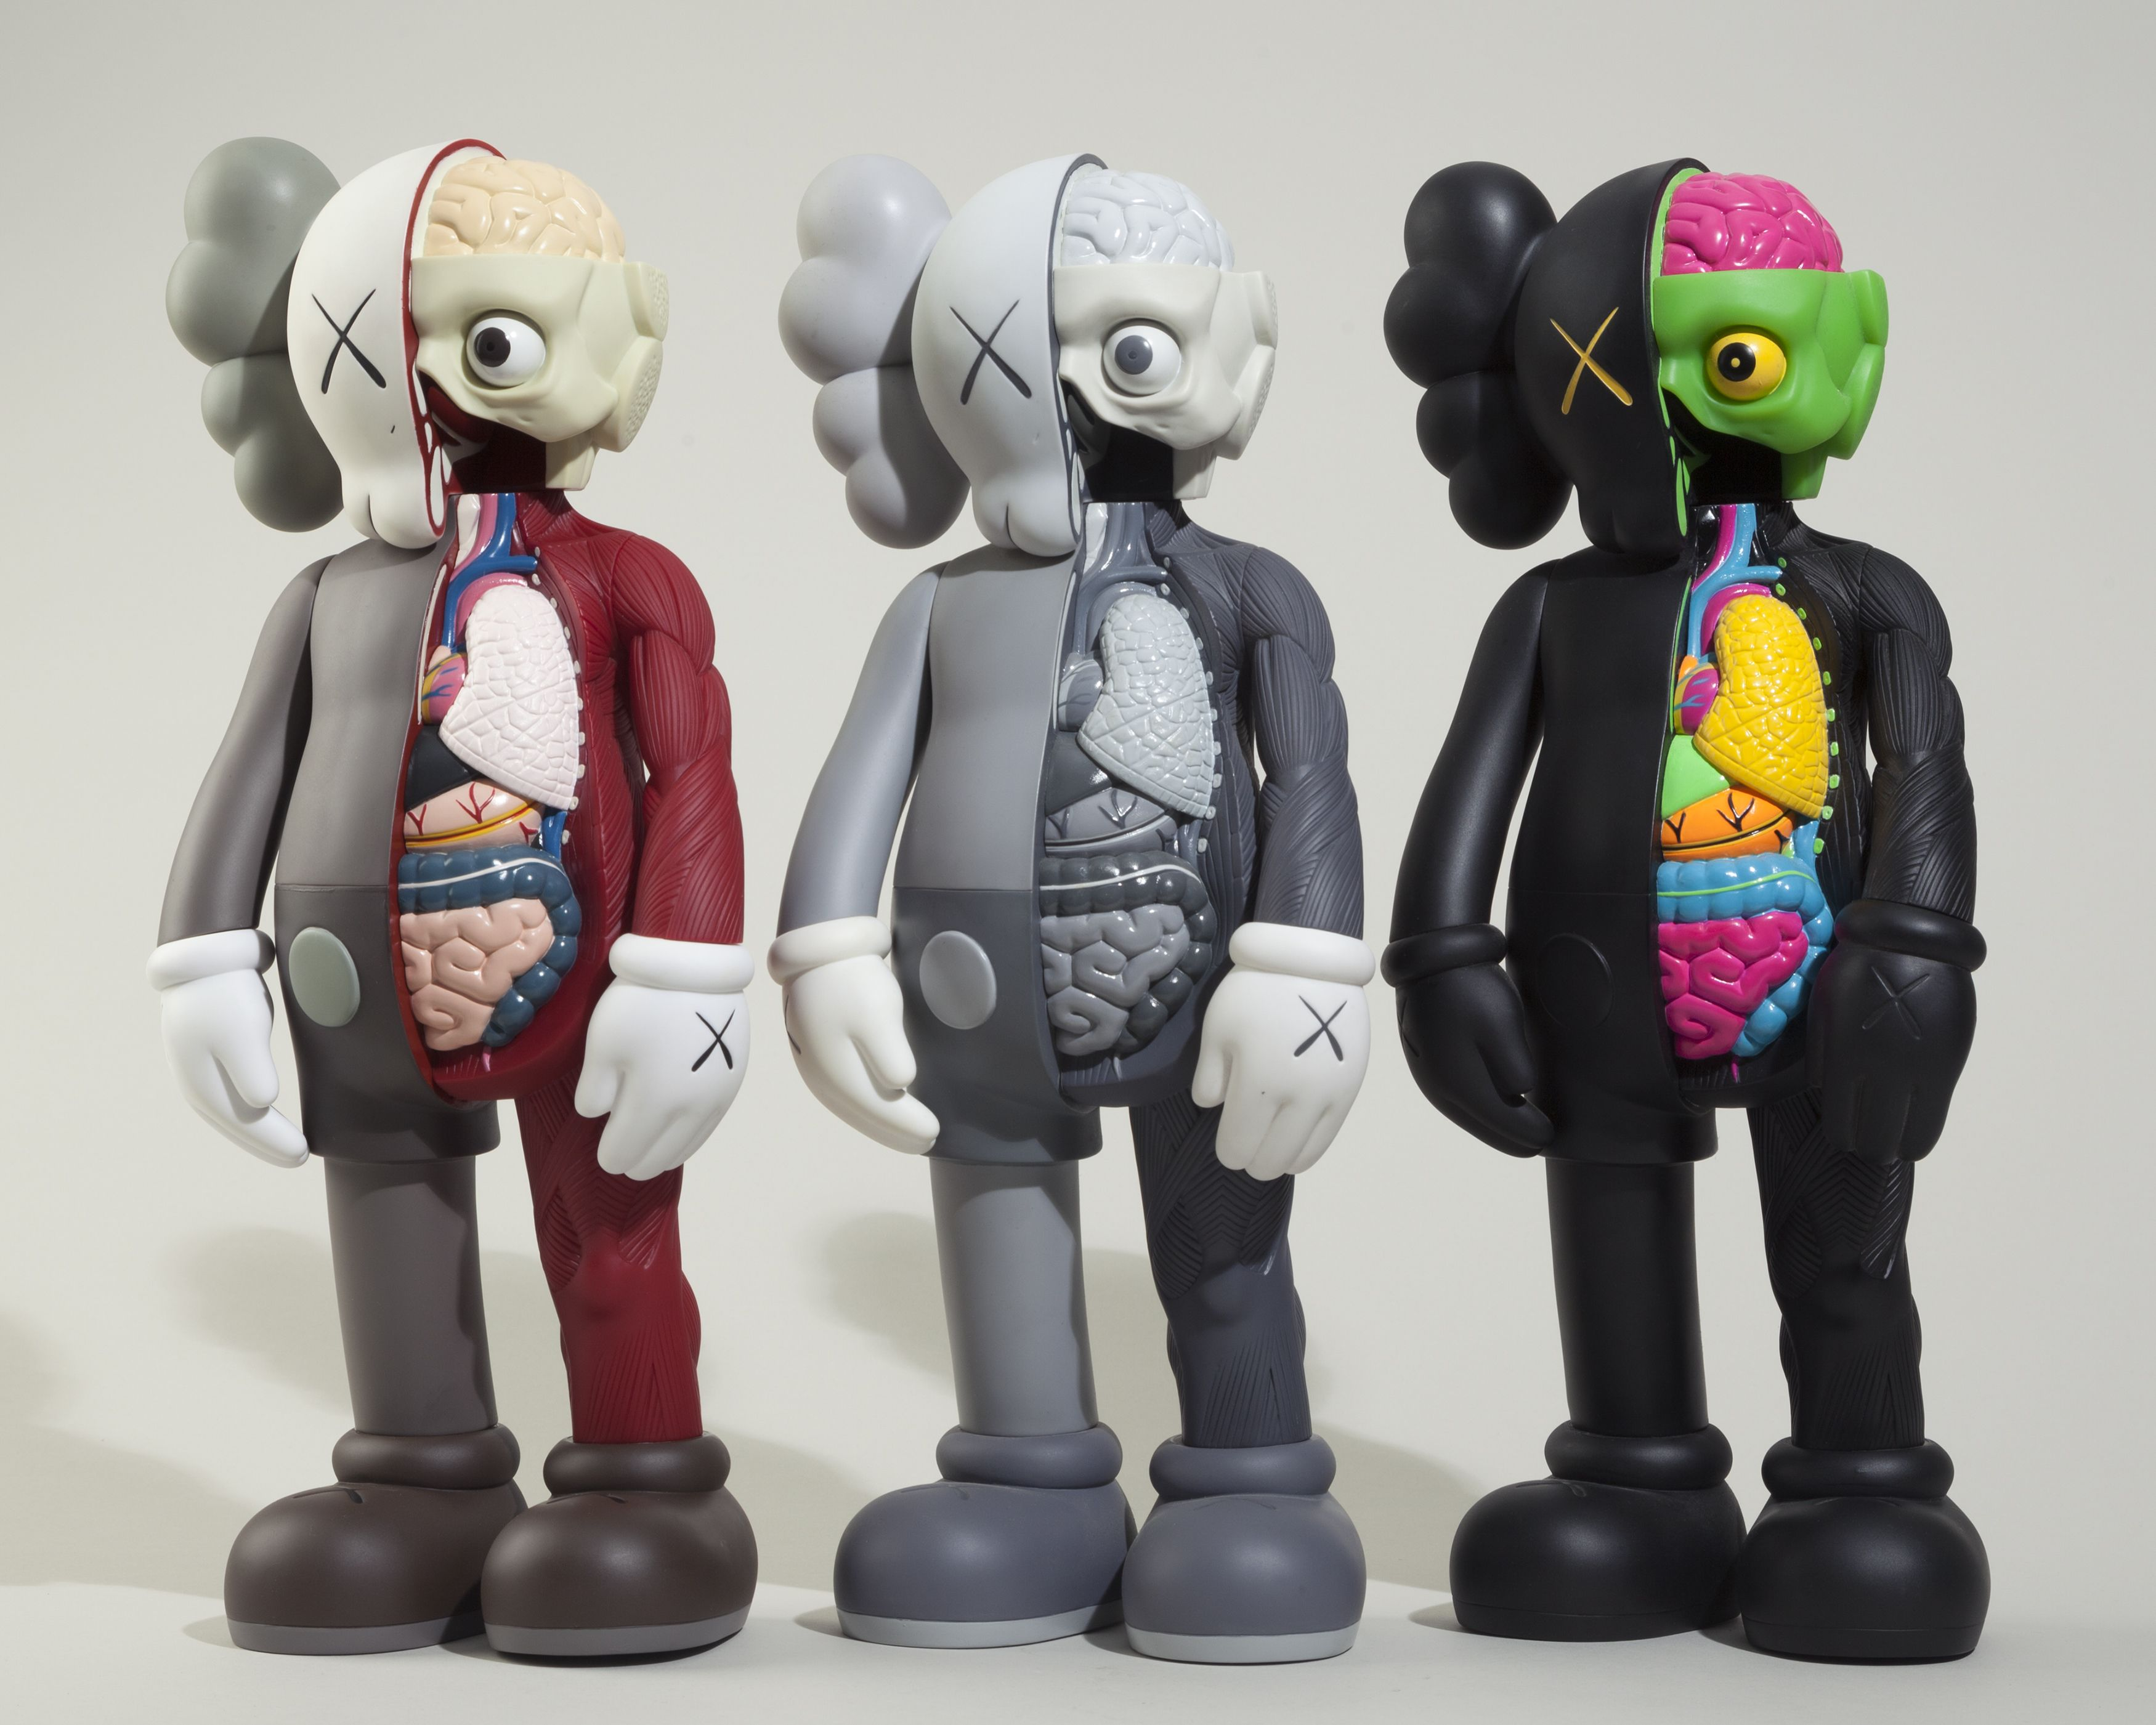 2fac1e5b440 KAWS Dissected Companion (complete set of 3, brown, grey and black ...